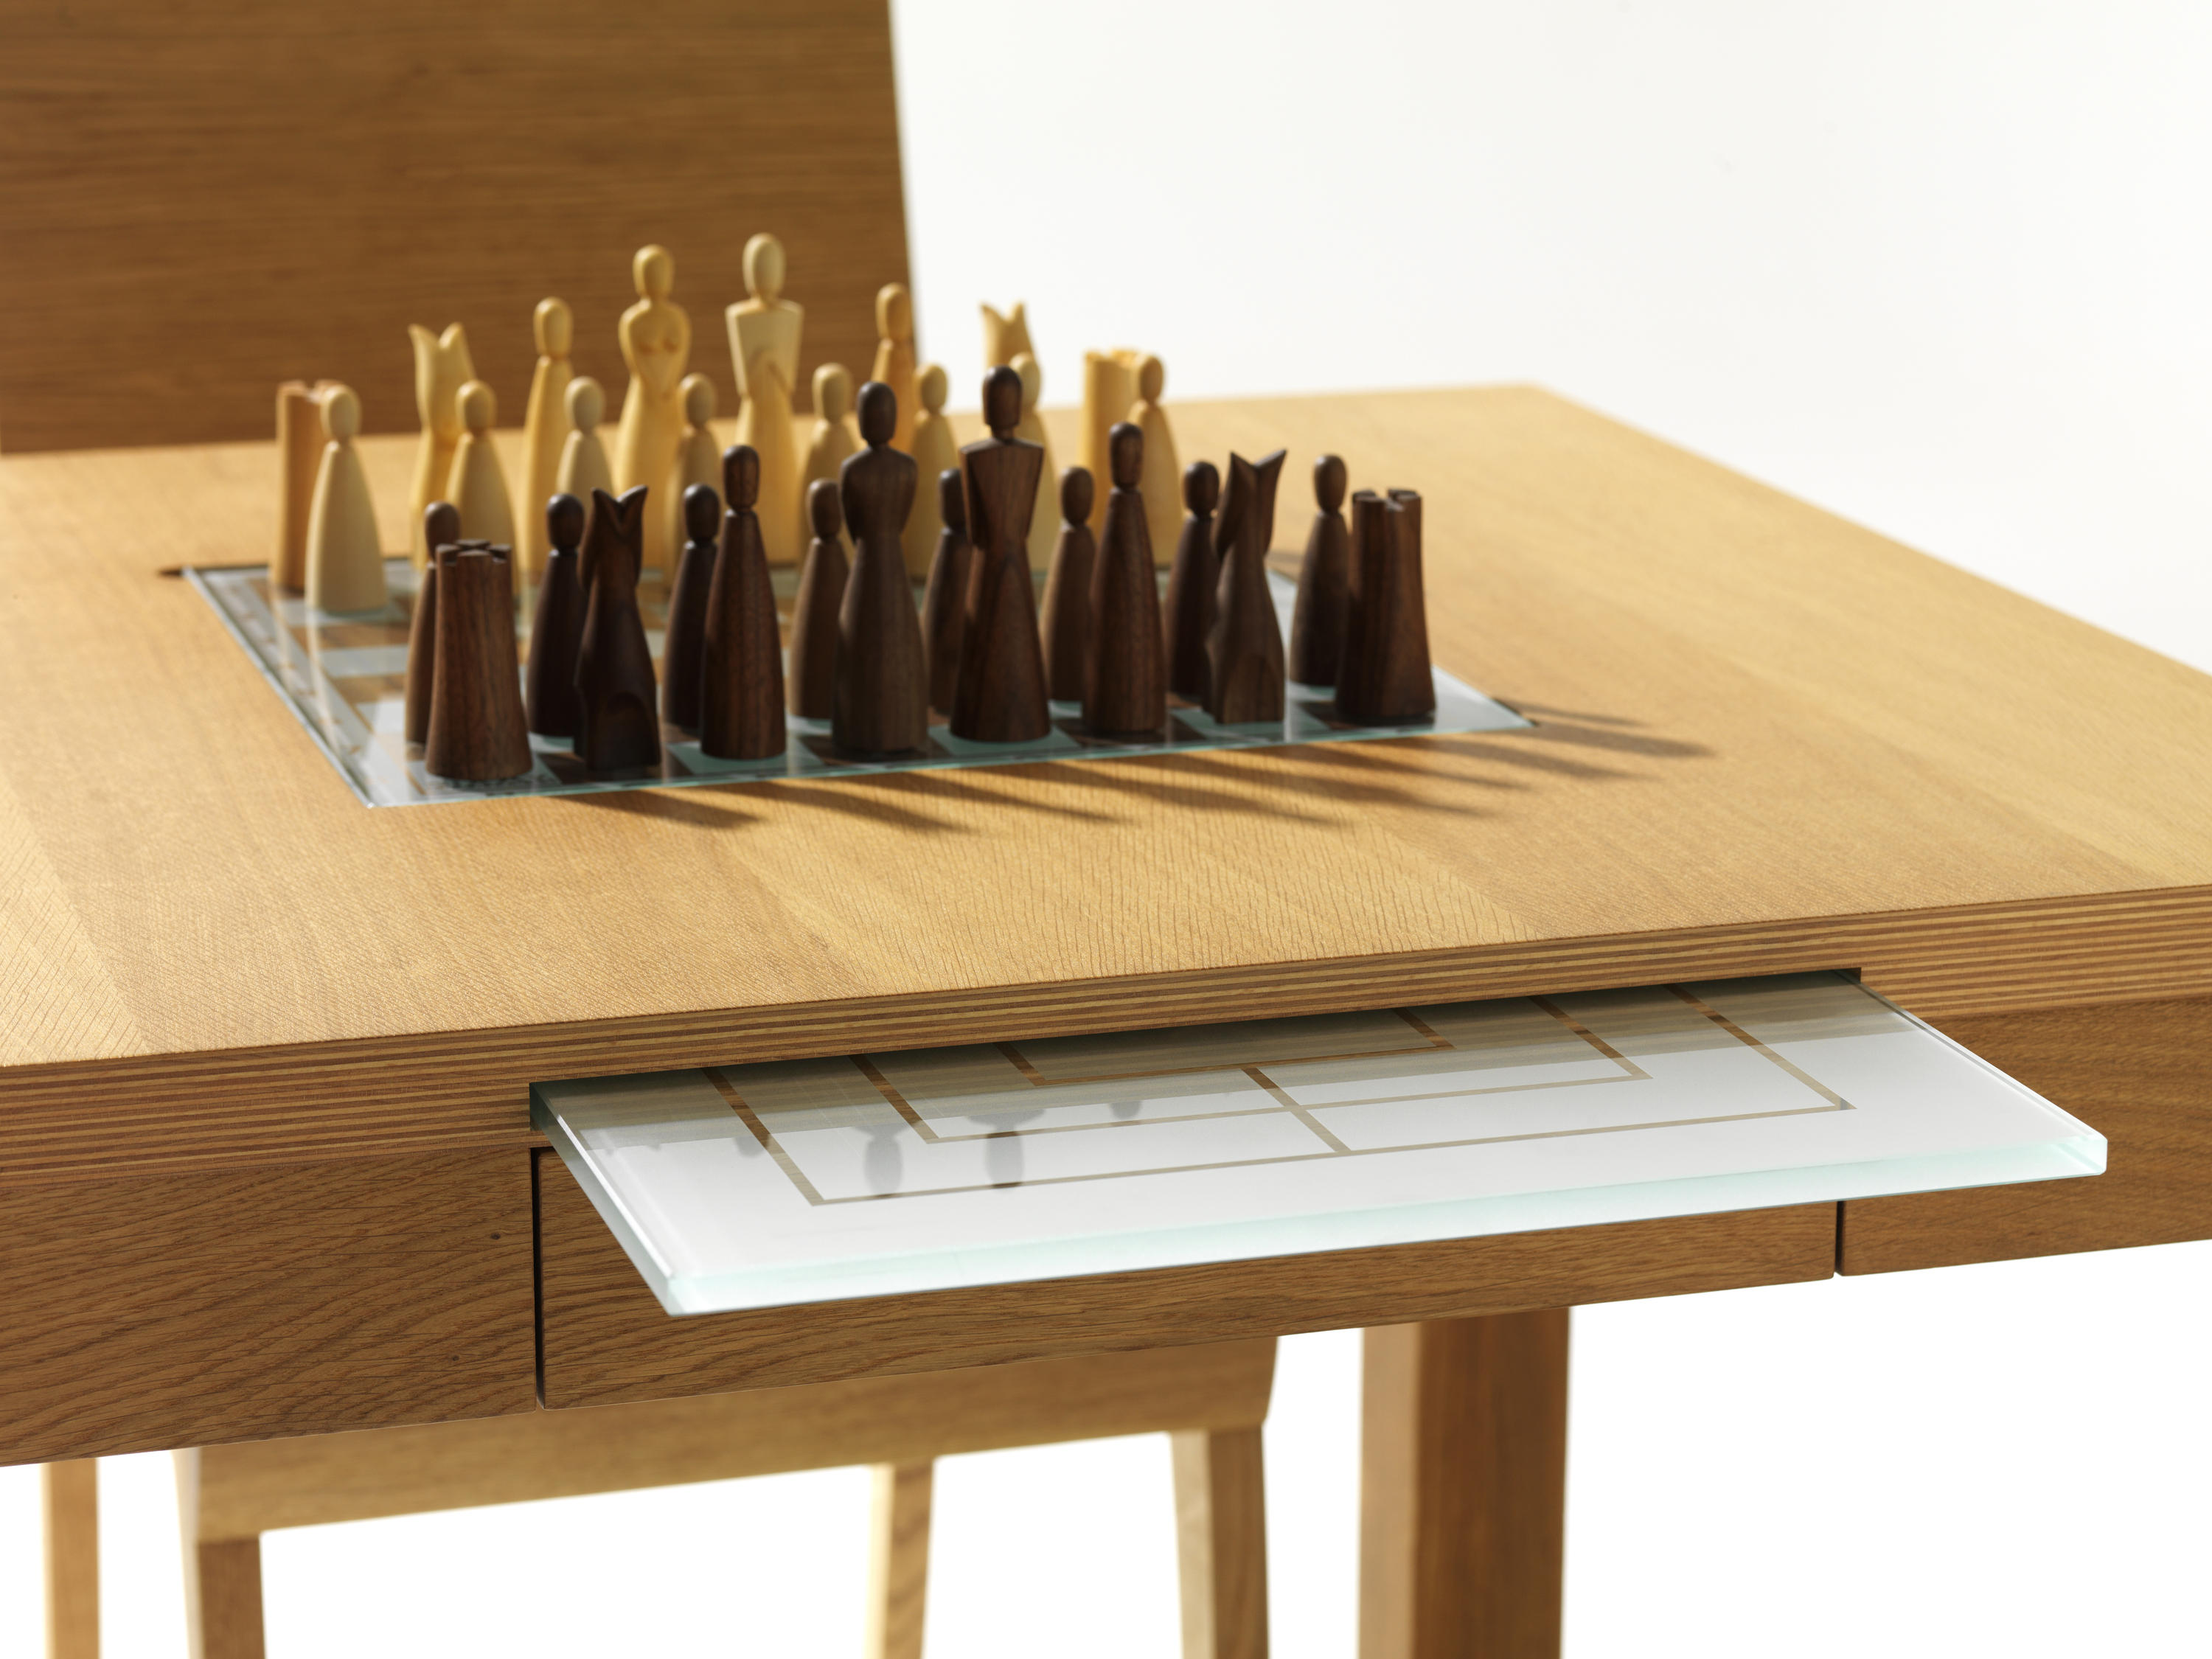 Ludo Solid Game Table By Sixay Furniture Tables Billiard